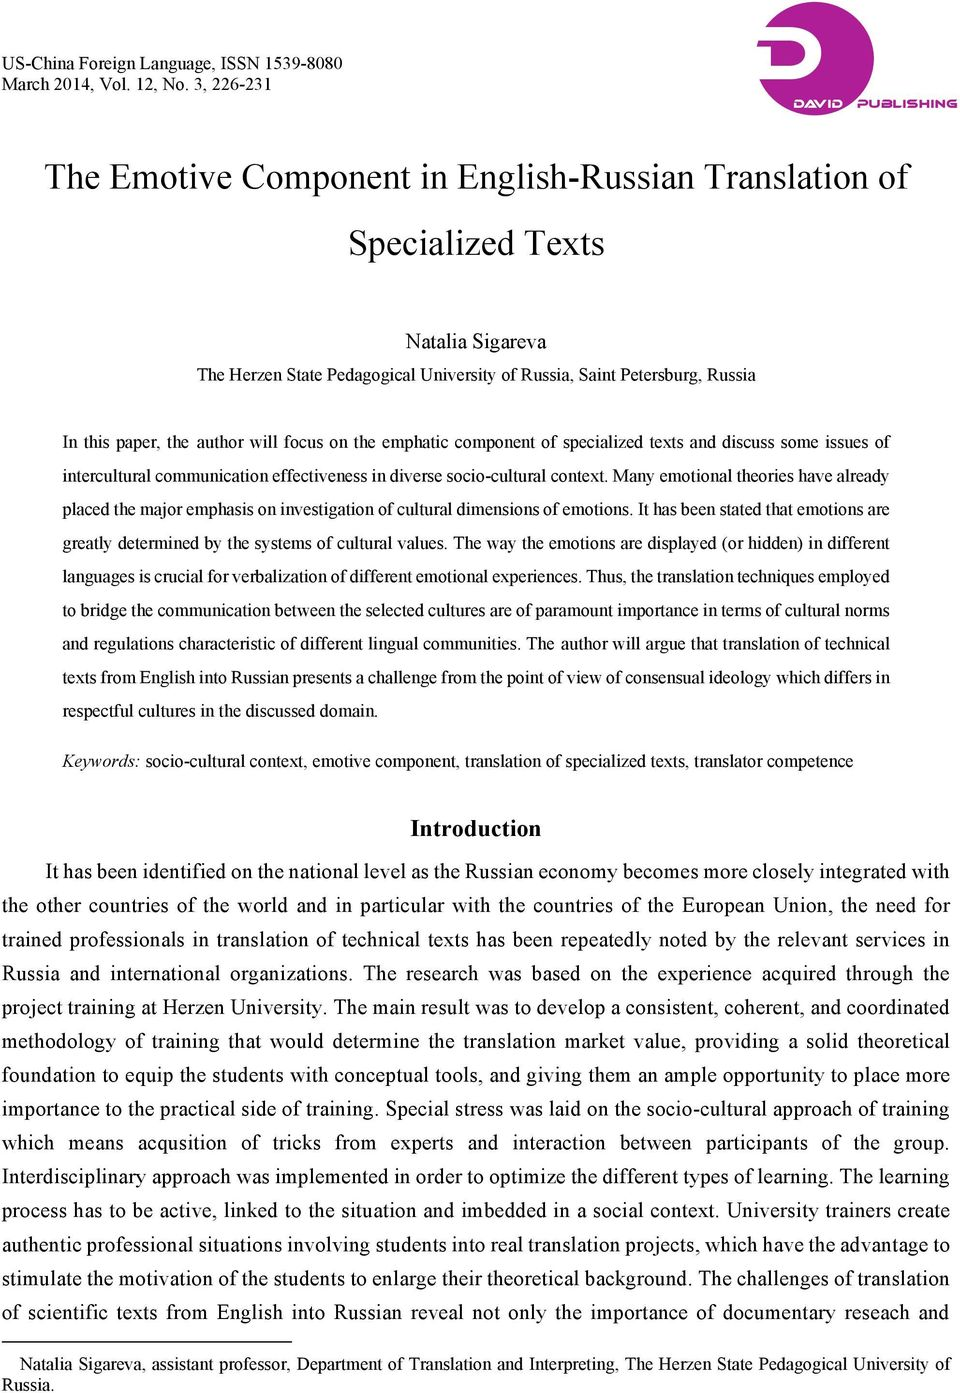 this paper, the author will focus on the emphatic component of specialized texts and discuss some issues of intercultural communication effectiveness in diverse socio-cultural context.